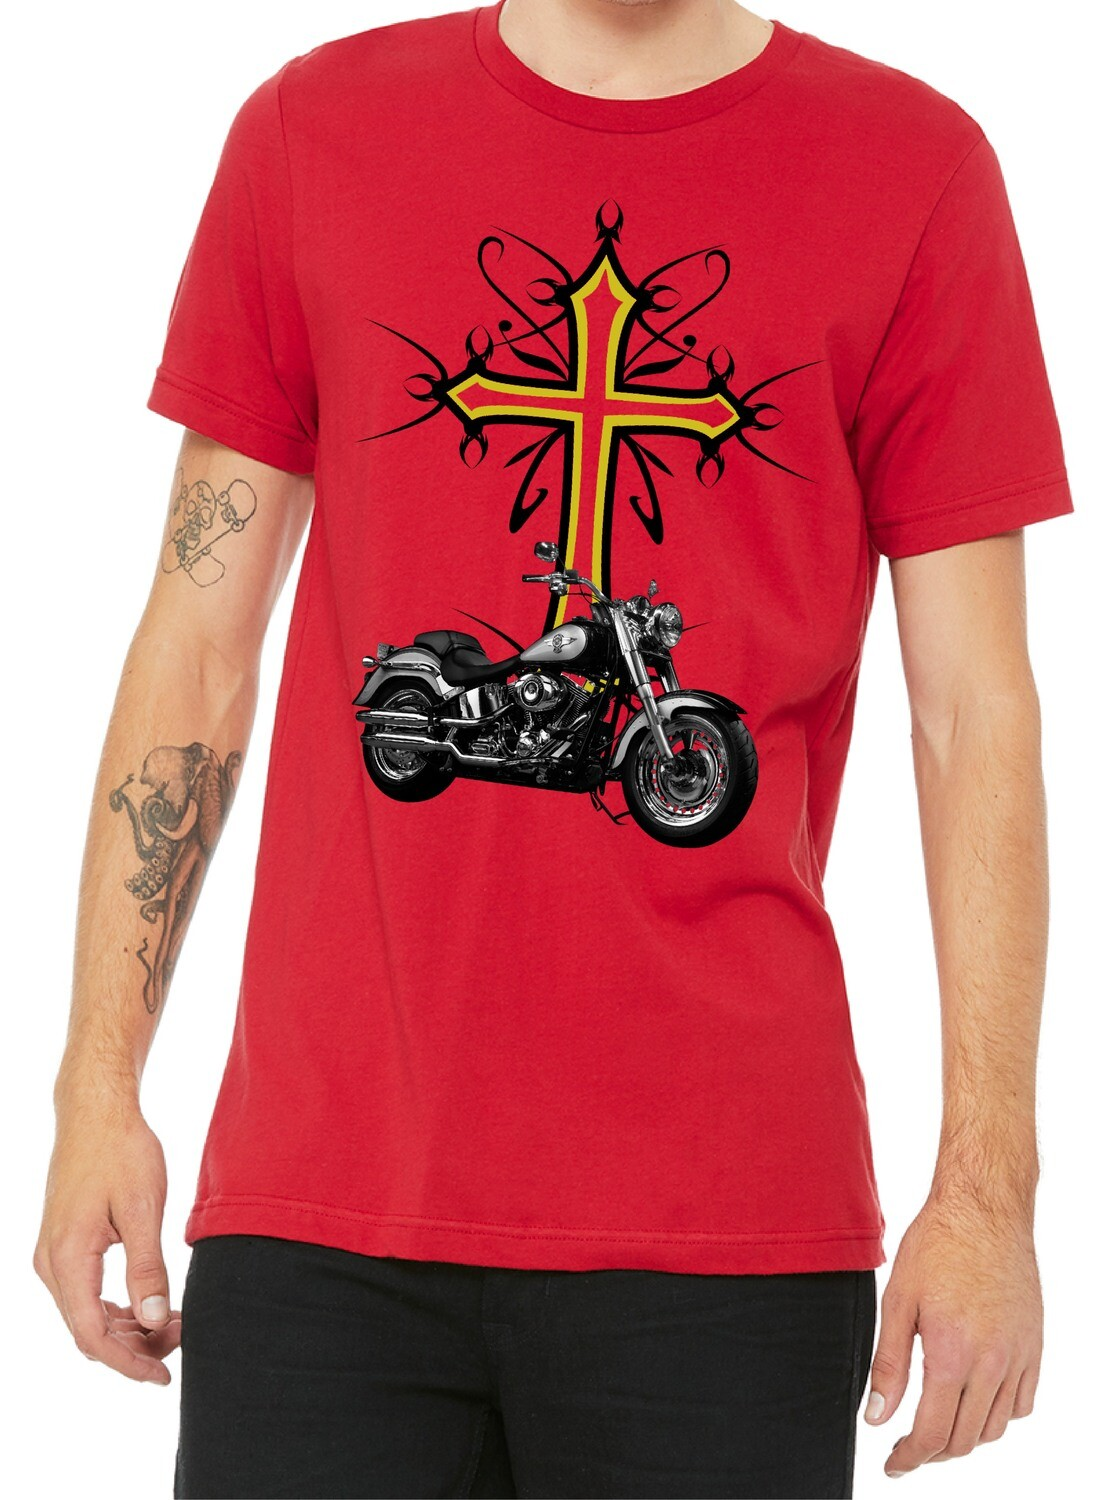 CELTIC CROSS MOTORCYCLE SHIRT FREE SHIPPING